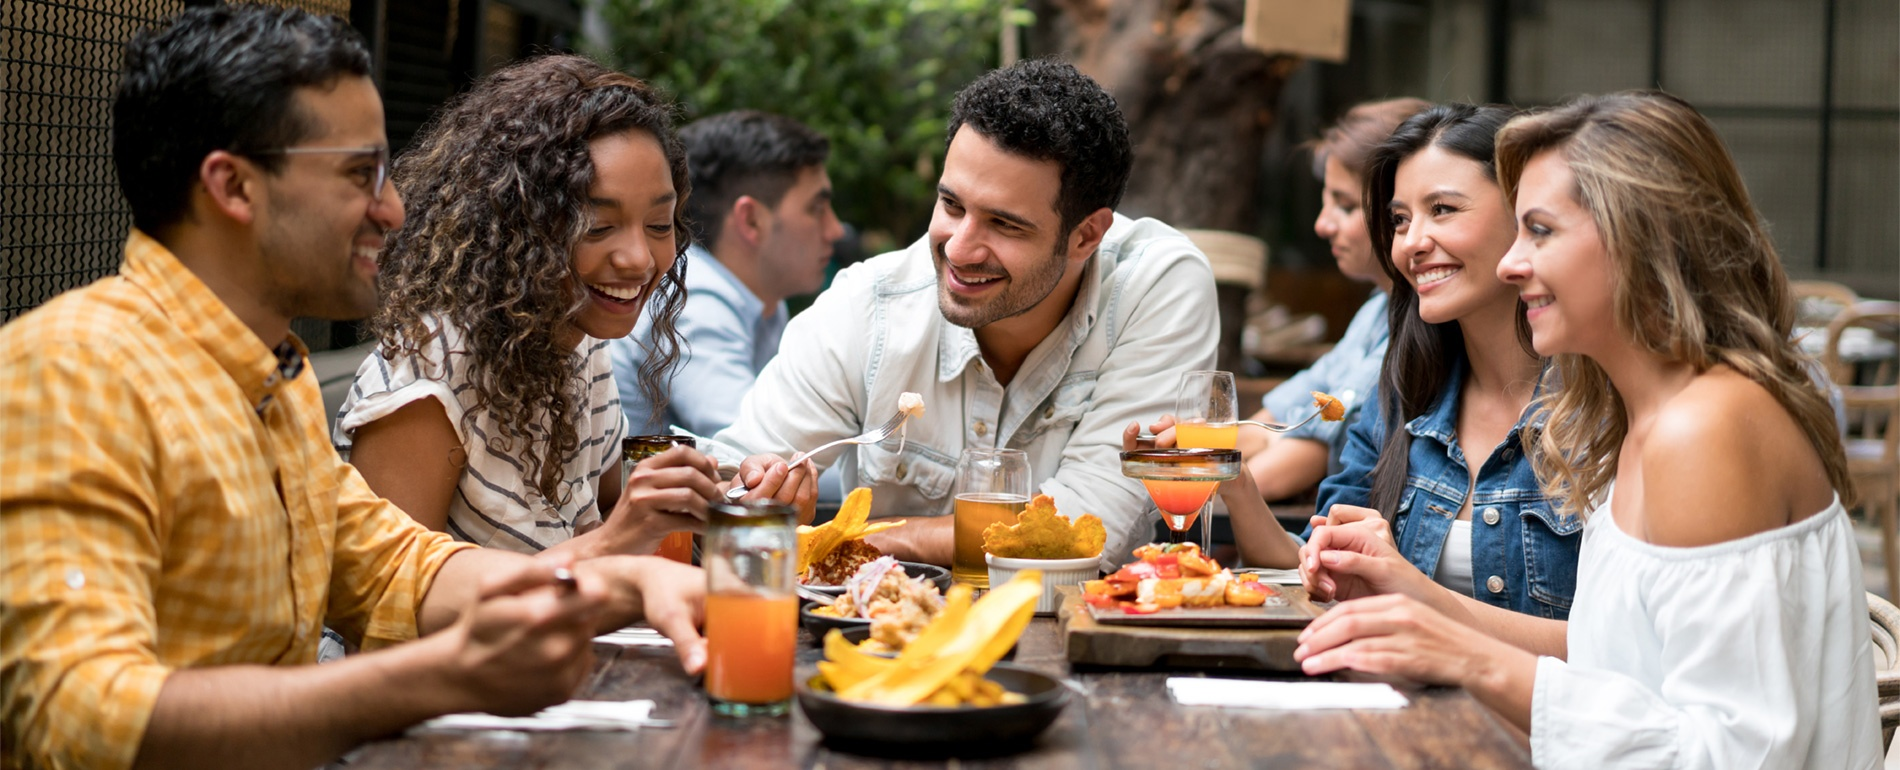 4 RESTAURANT MARKETING IDEAS THAT WILL MAKE YOUR SUMMER SEASON SHINE